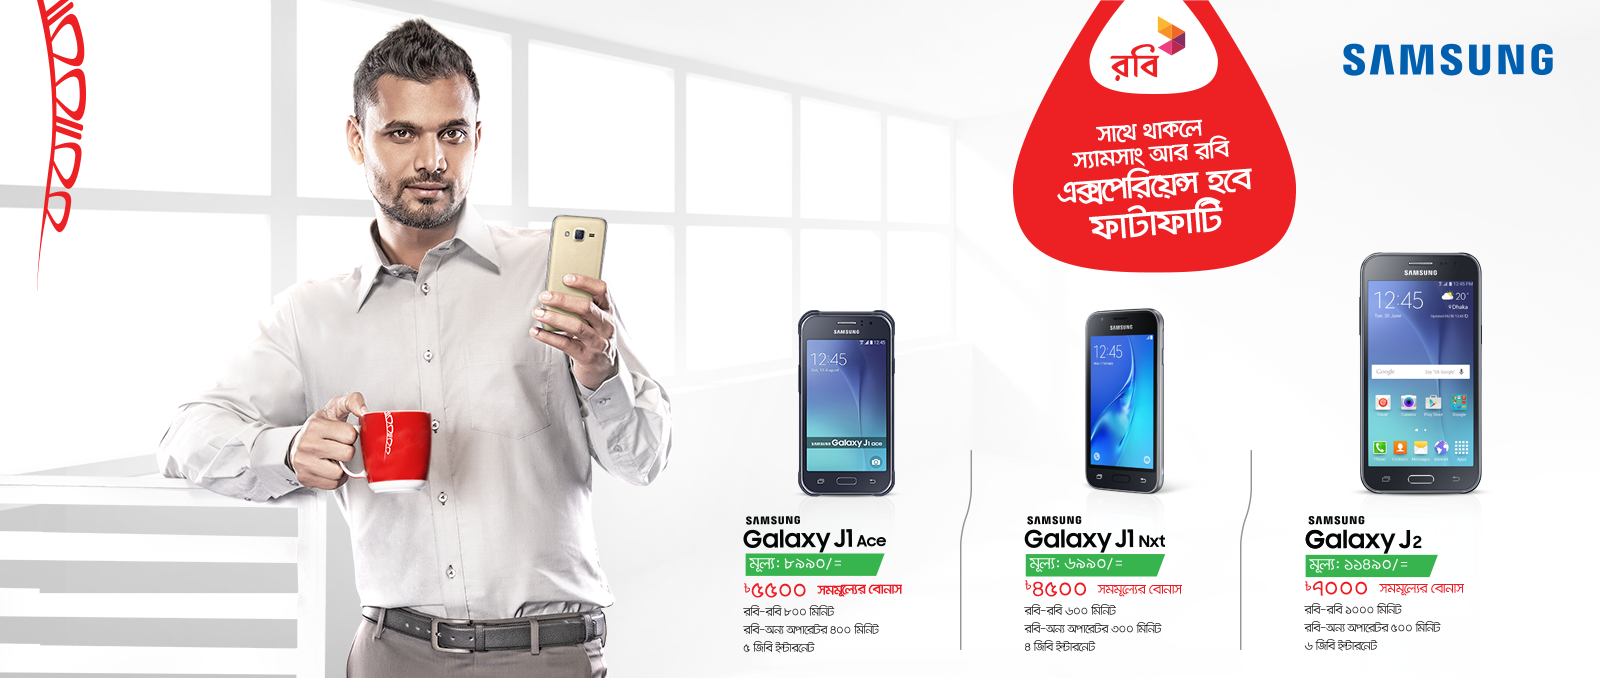 ROBI SAMSUNG SMARTPHONE OFFER